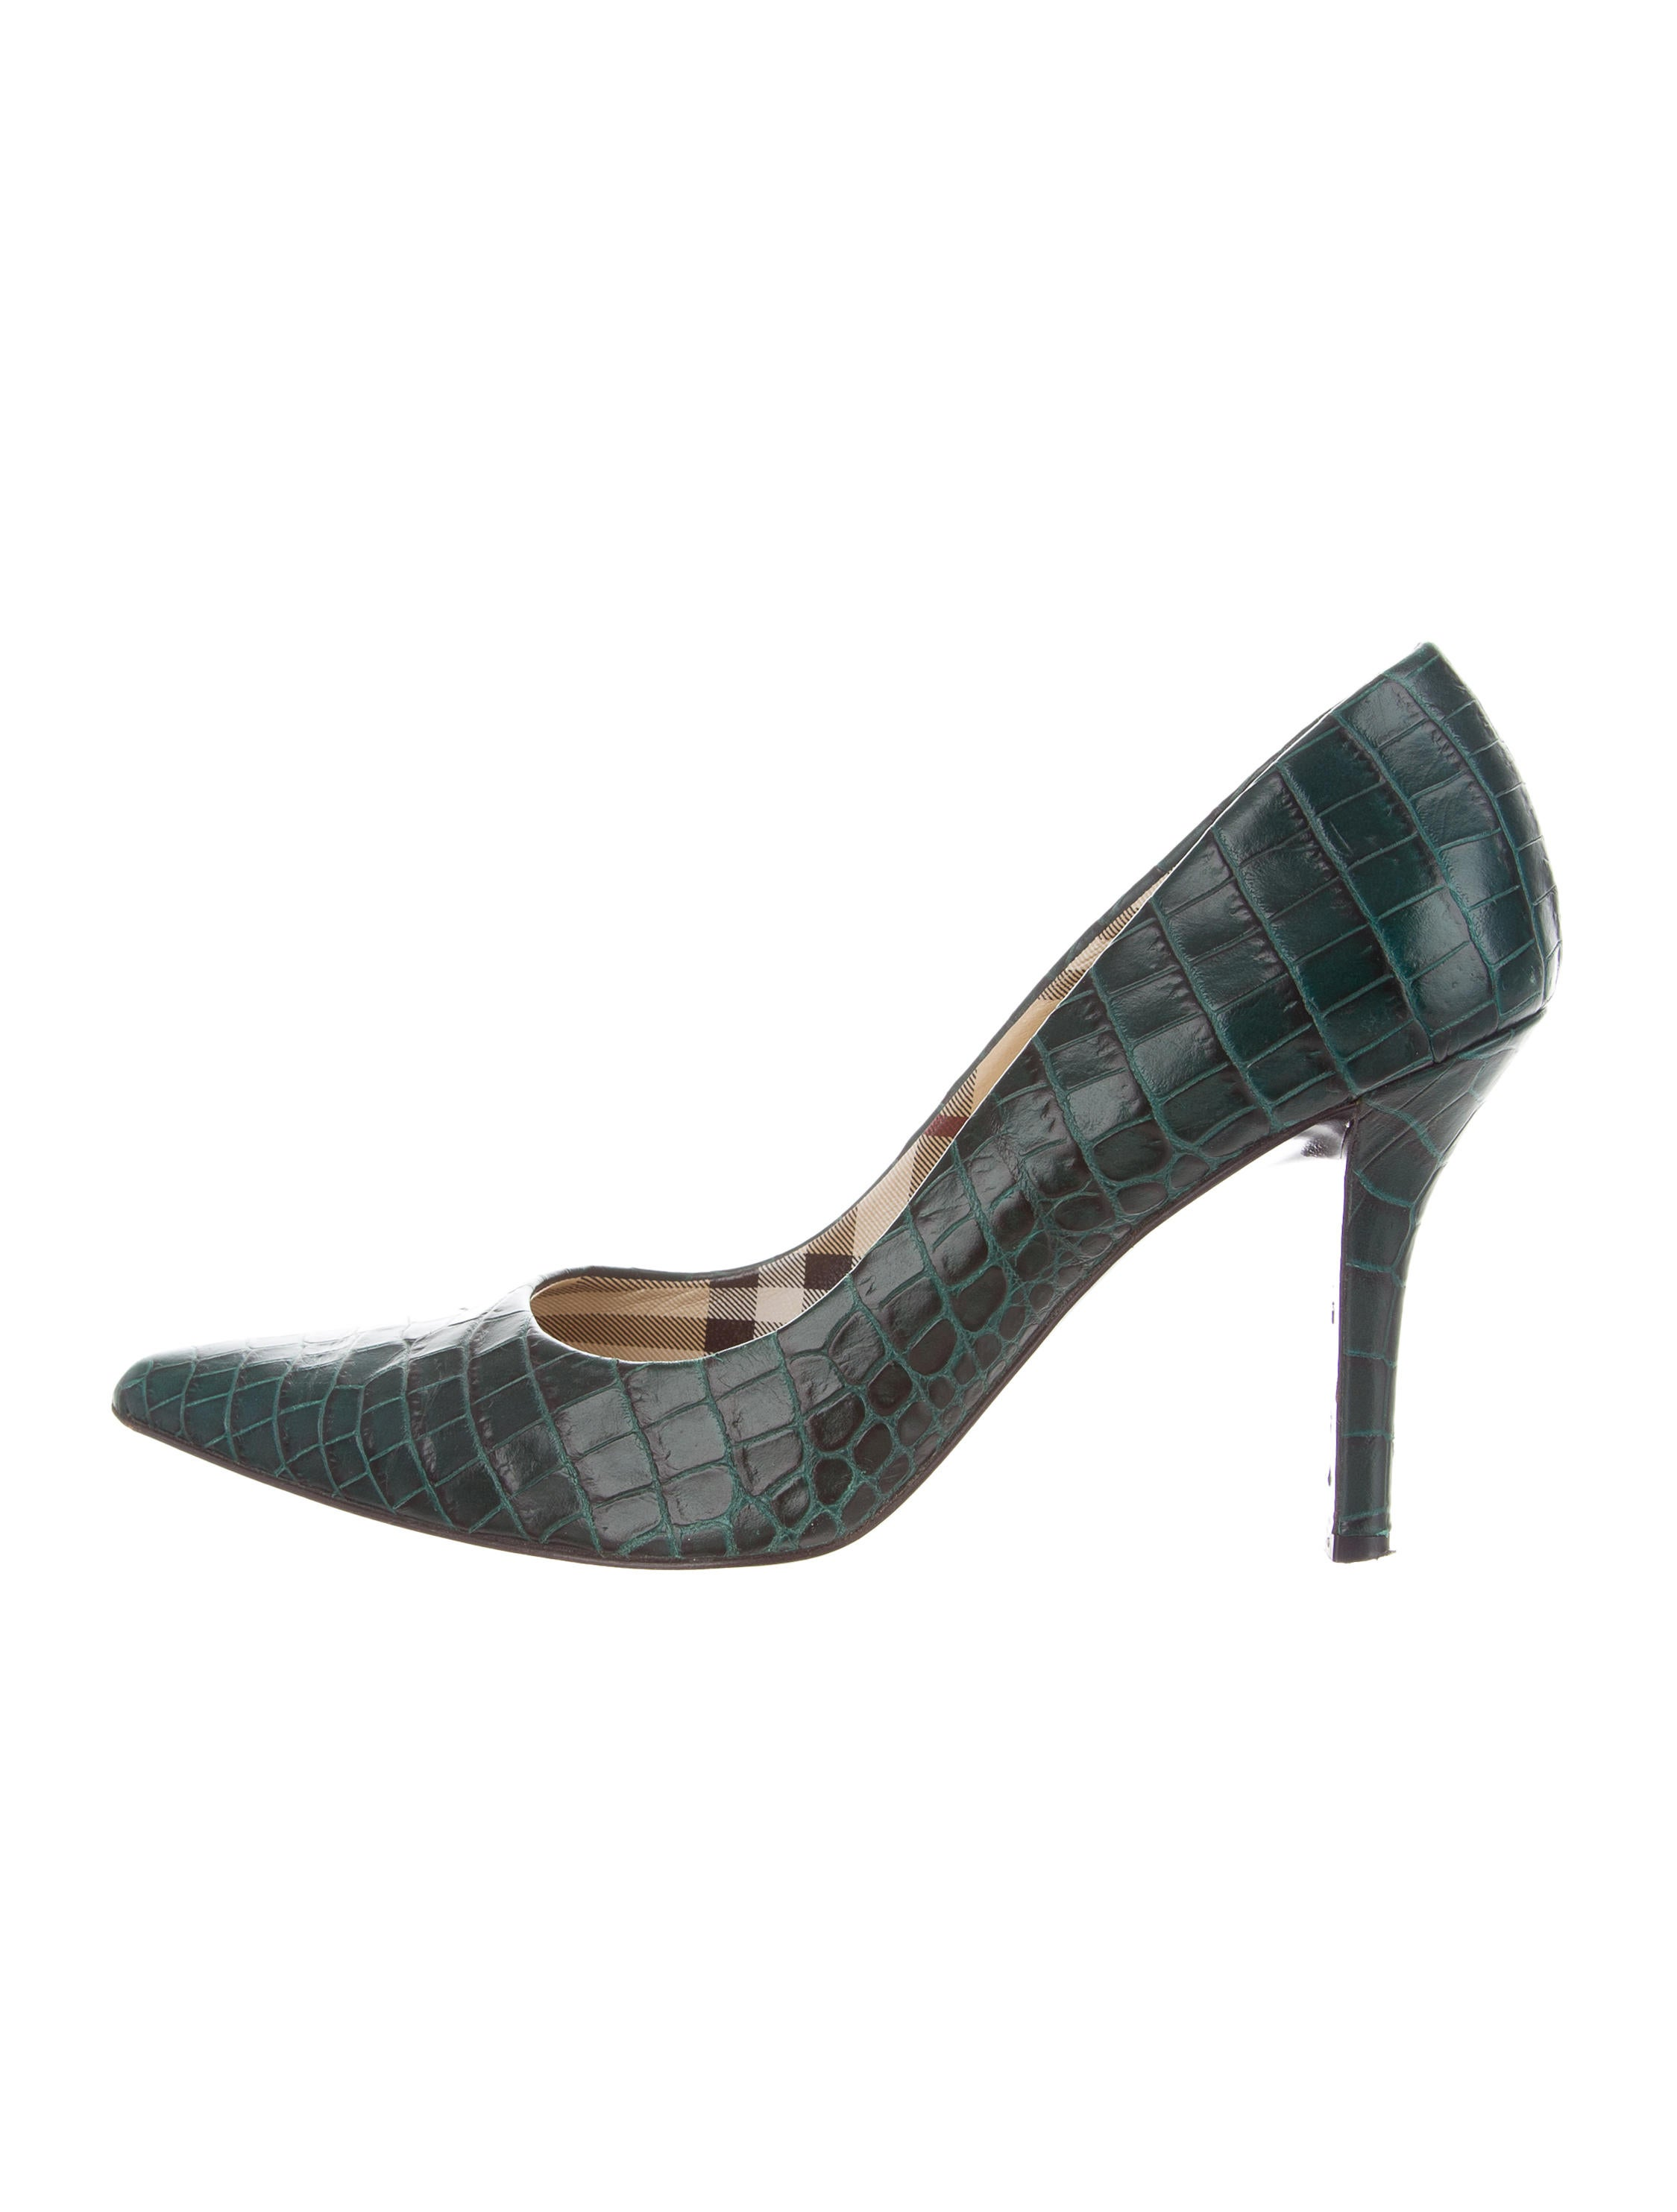 wide range of sale online Burberry Alligator Pointed-Toe Pumps best seller cheap price big discount for sale reliable cheap online TAcZ9P